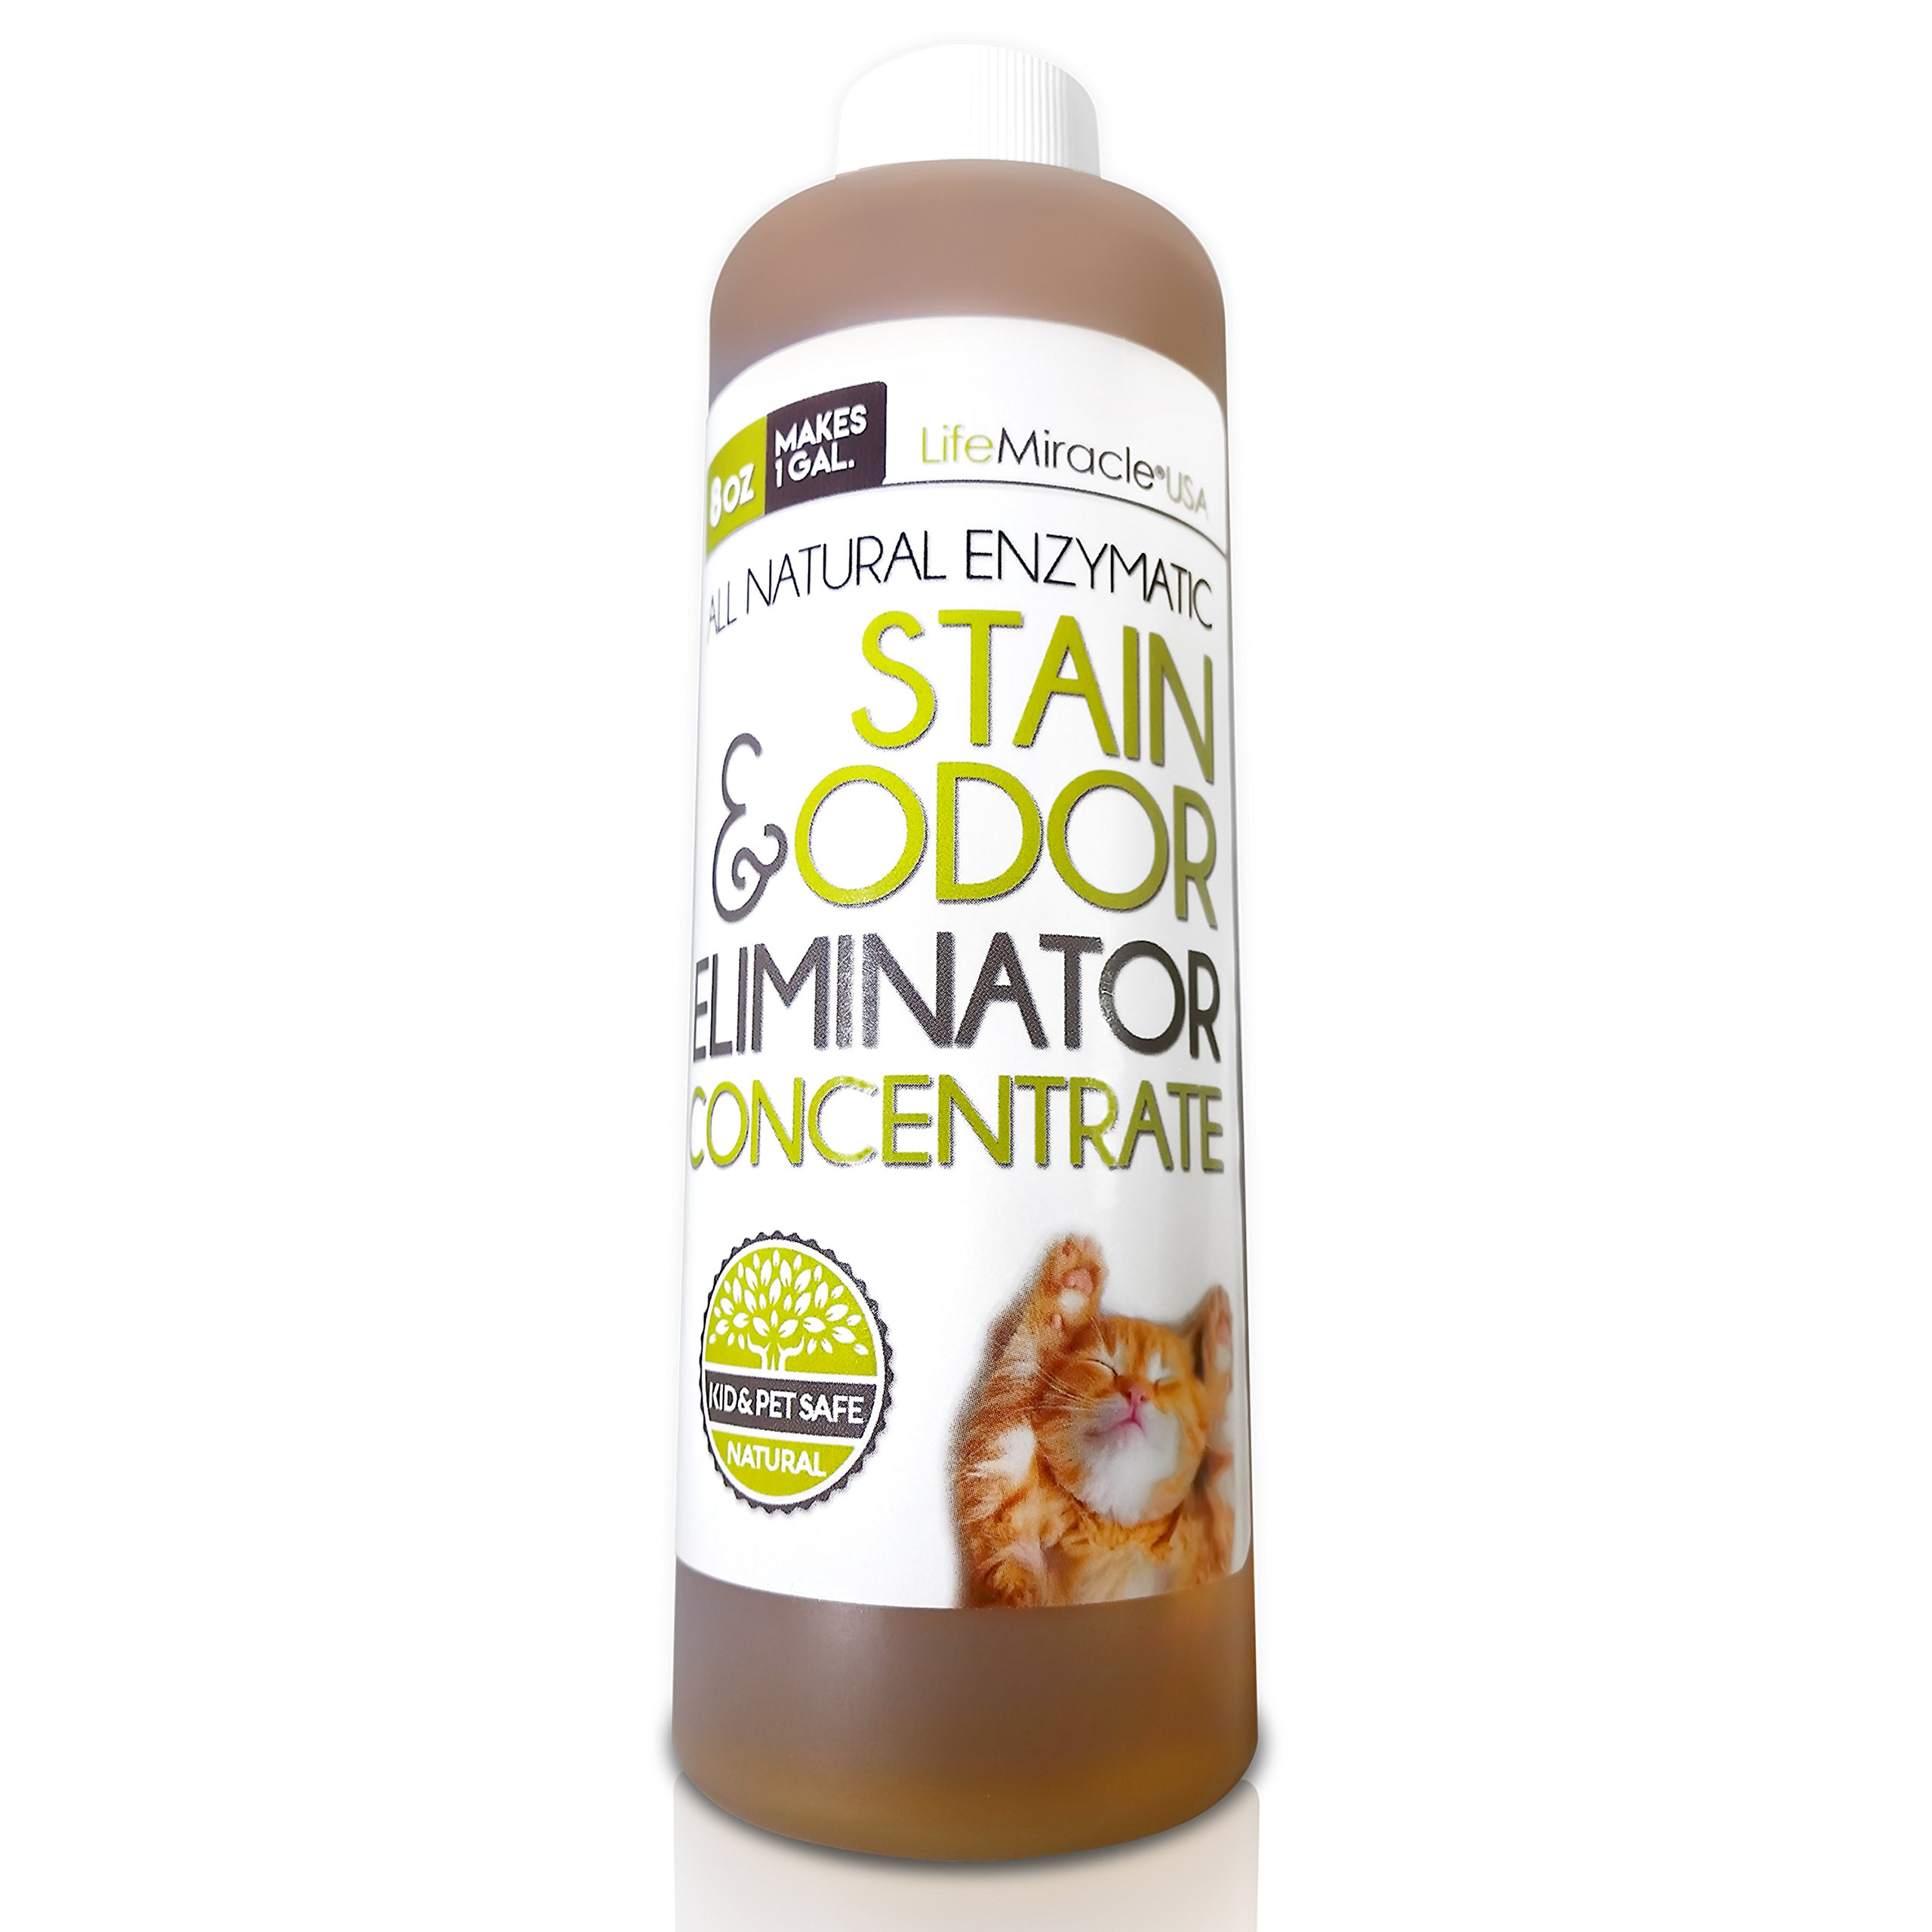 Enzyme Cleaner CONCENTRATE. Safe, All Natural Carpet Cleaning and Laundry Stain Remover & Odor Neutralizer. All In One, All Surface Non-Toxic Cleaner Concentrate Makes a GALLON (128 oz) Of Product